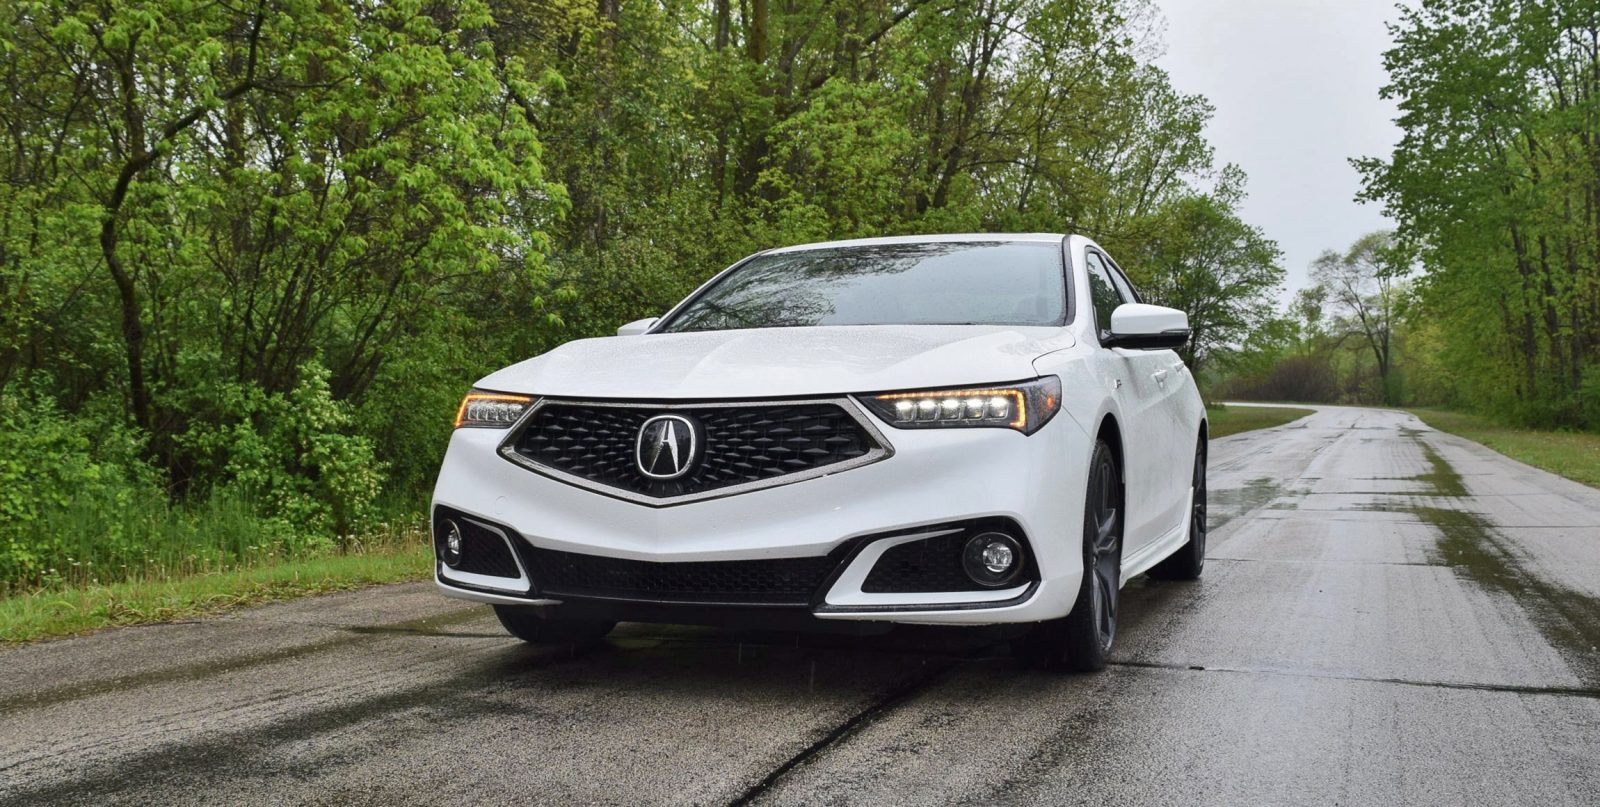 2018 Acura TLX A-Spec SH-AWD - First Drive Video + 42-Photo Flyaround